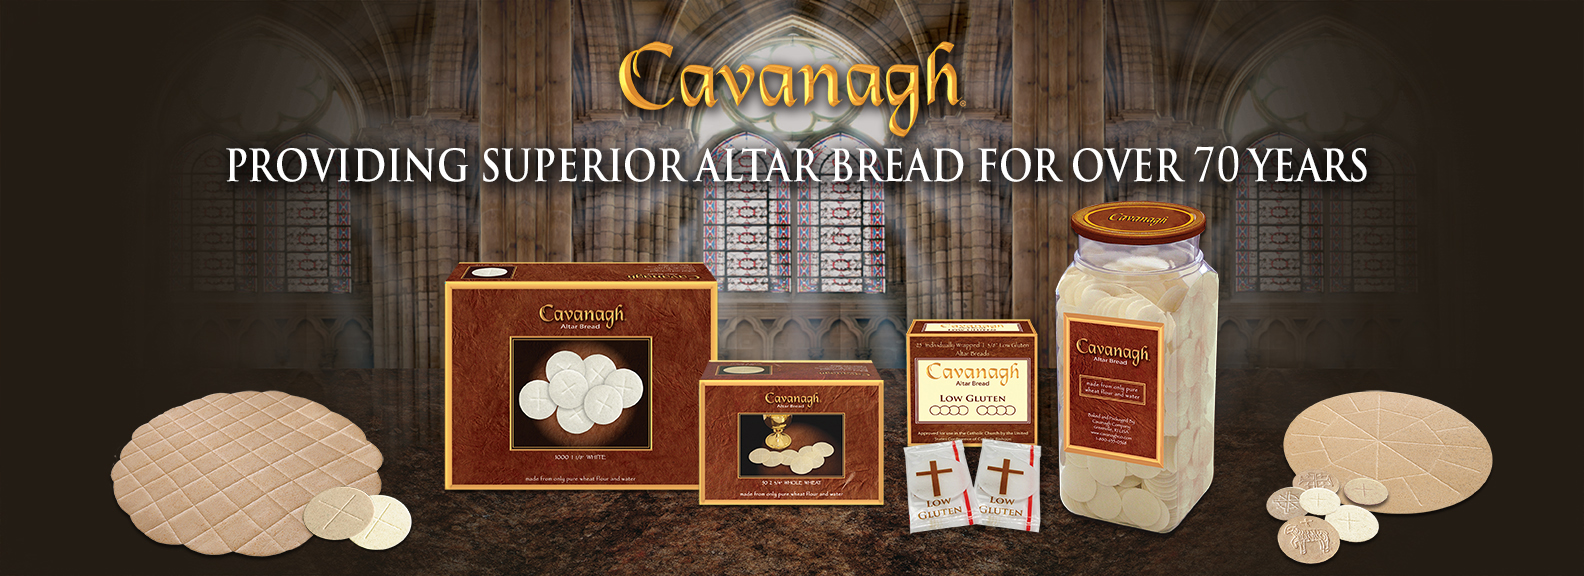 Welcome to Cavanagh Altar Bread